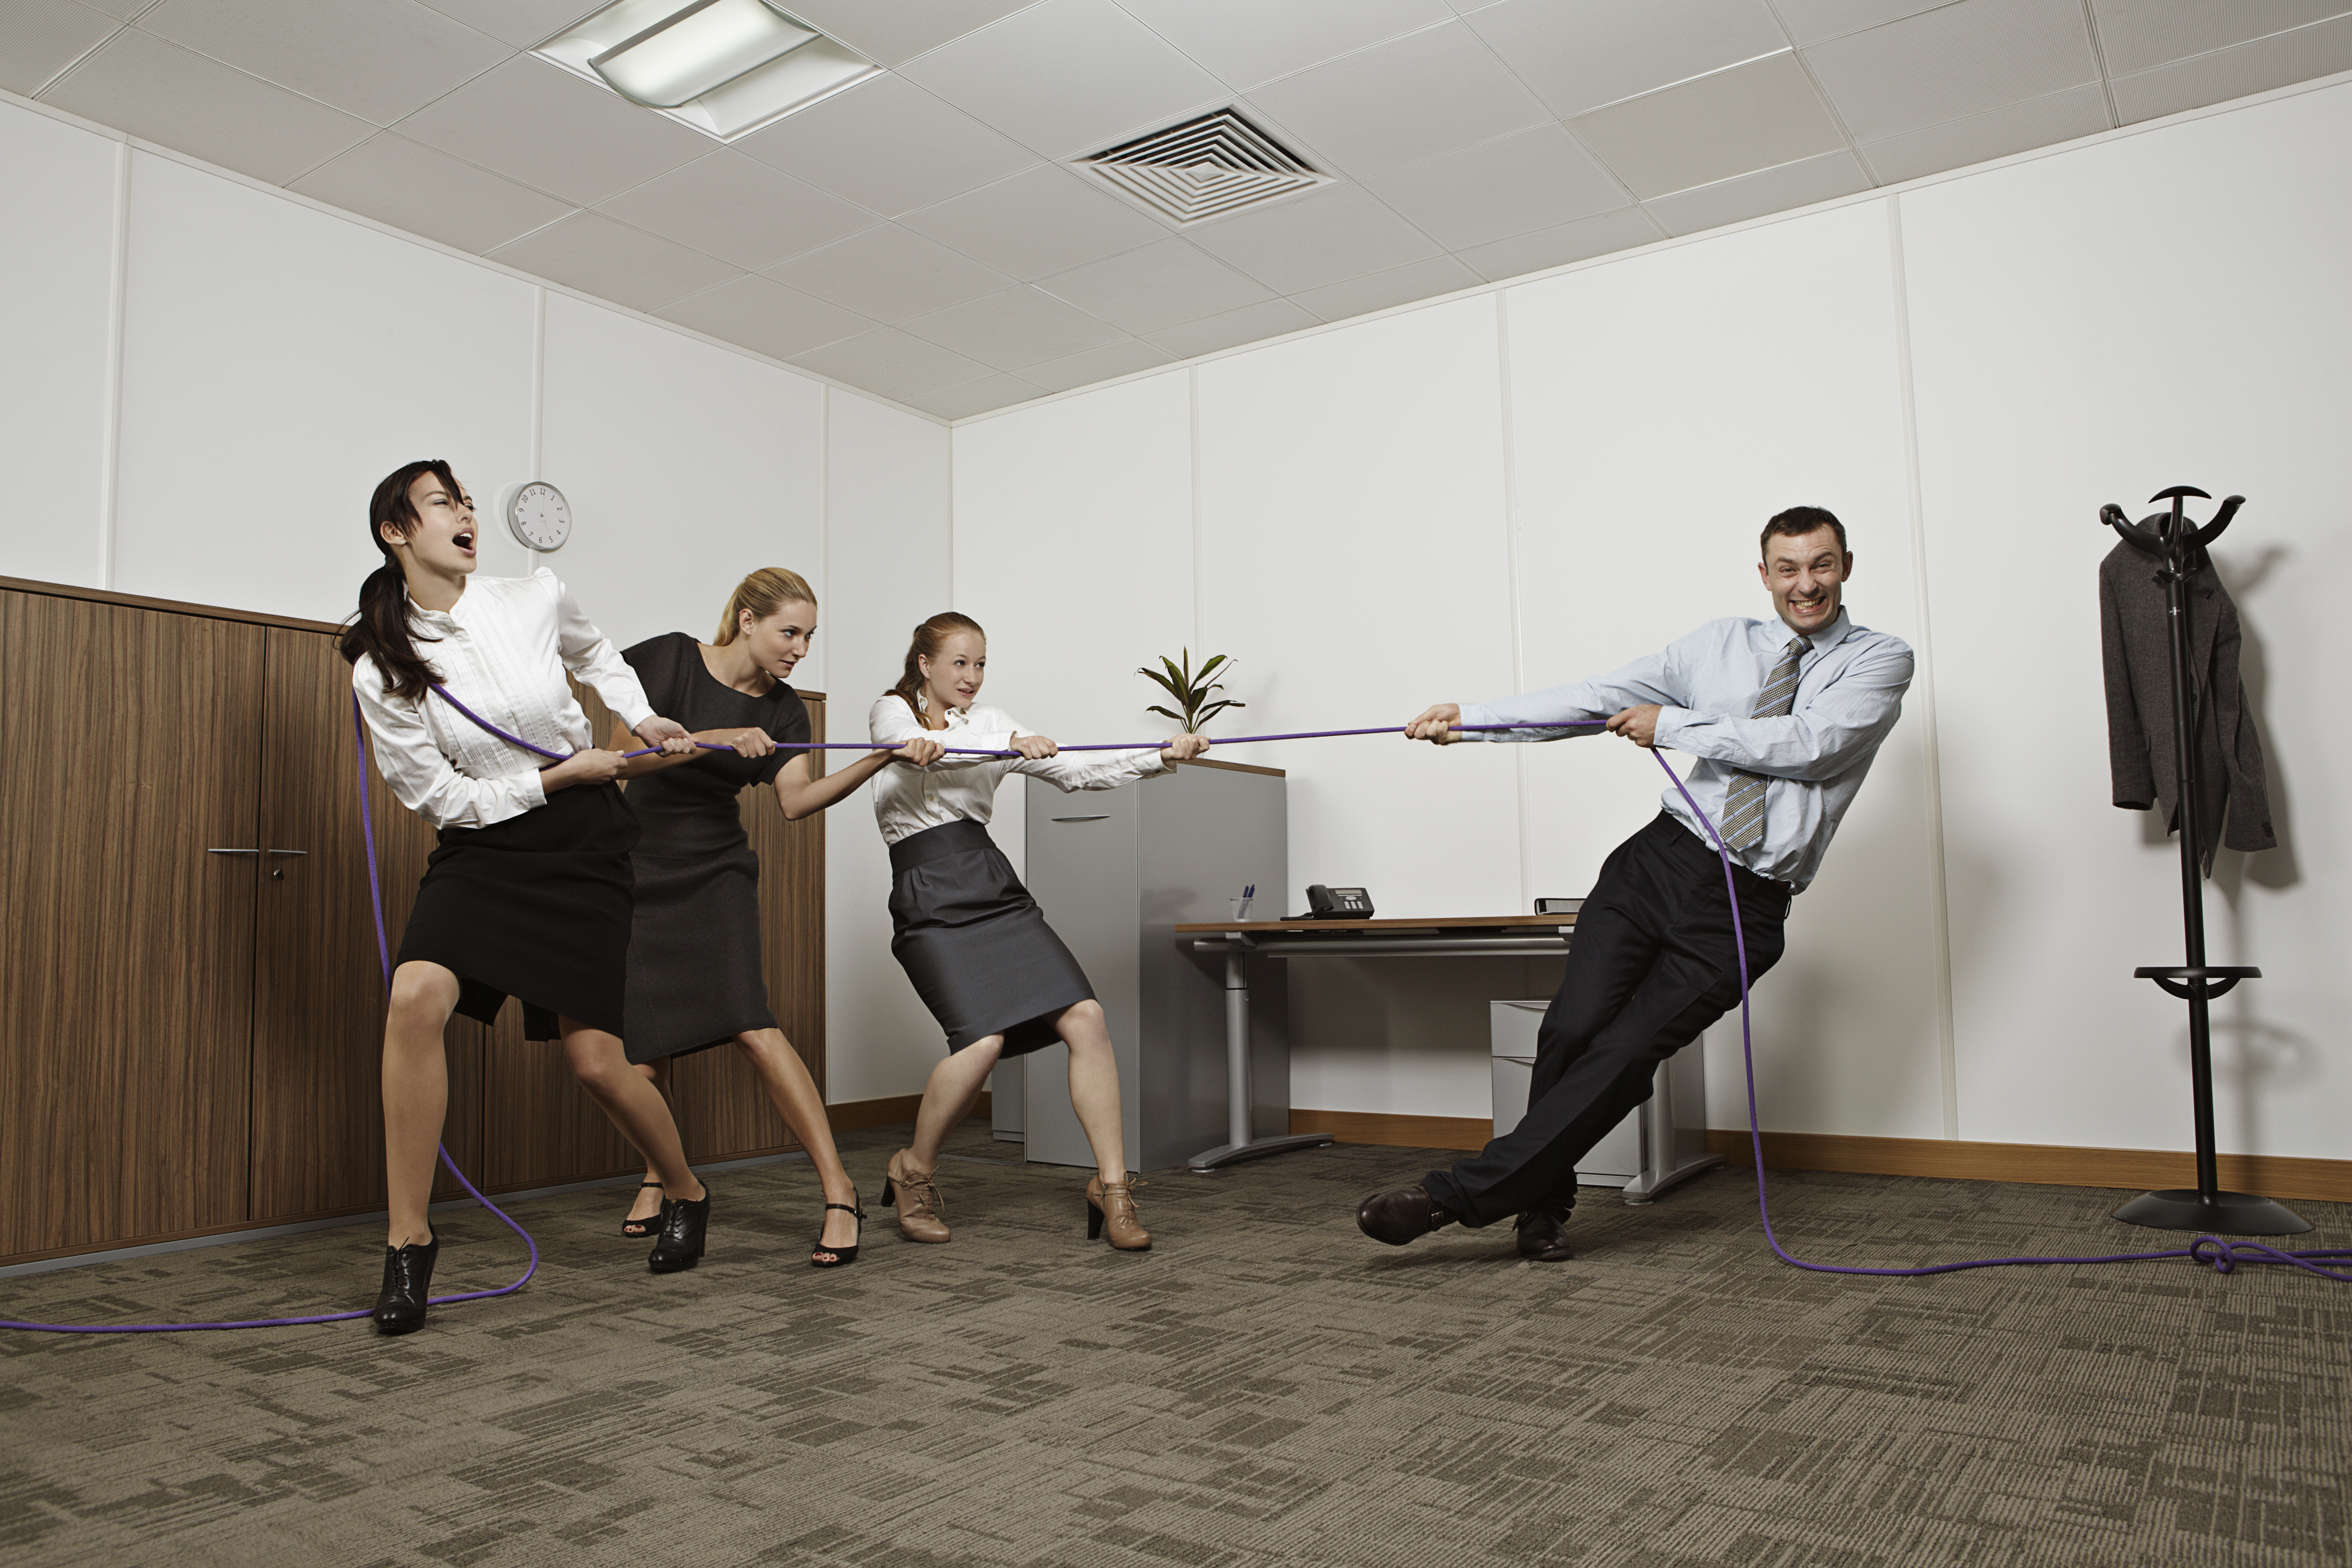 Coworkers playing tug-of-war